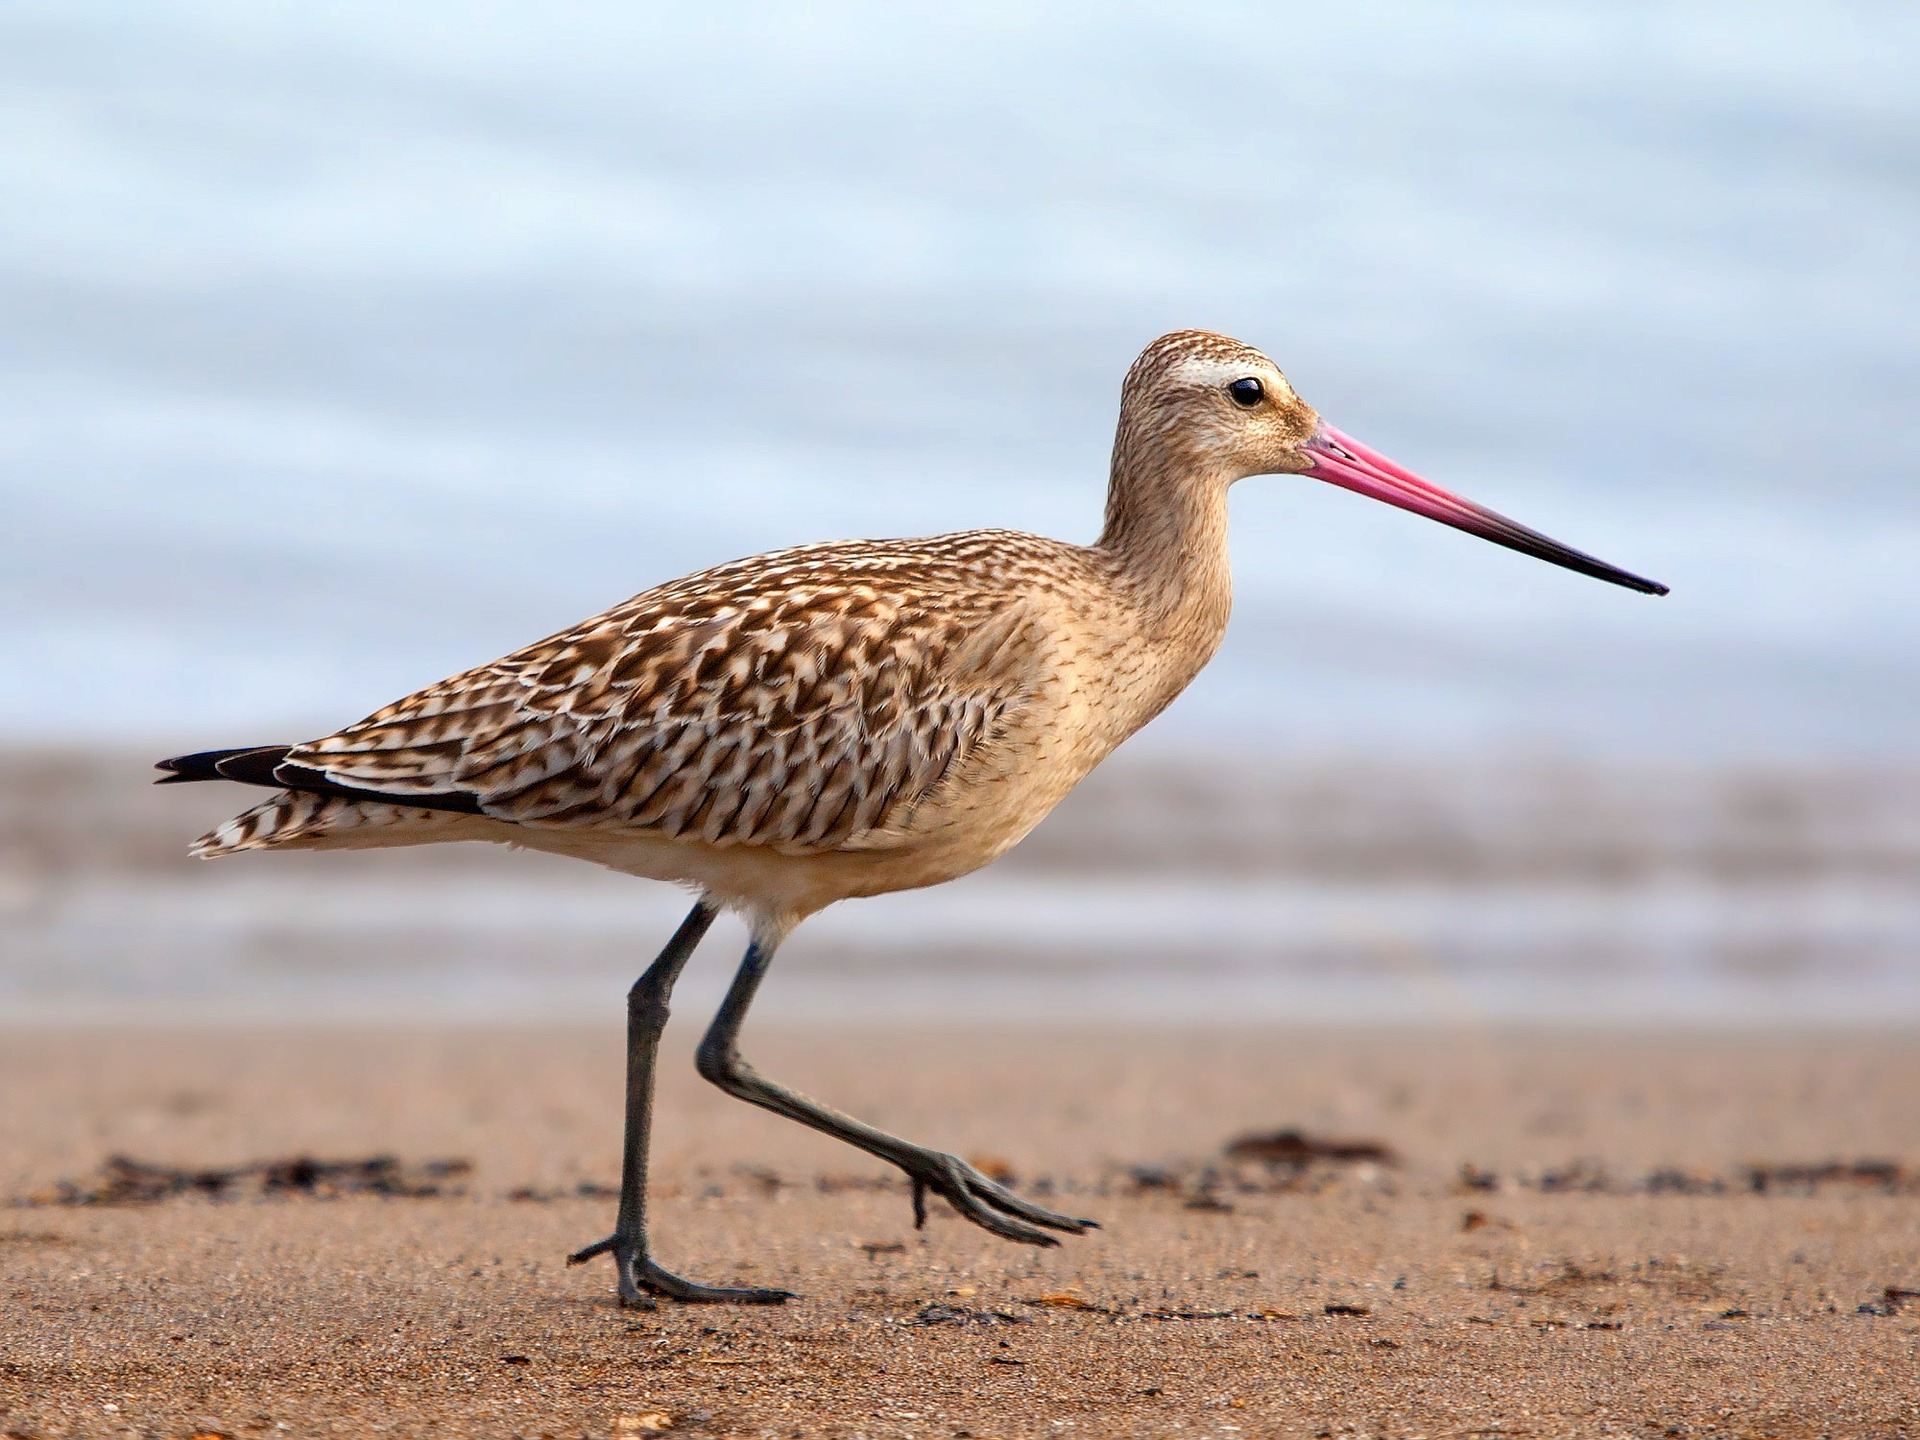 The Bar-tailed Godwit is the focus of Jeannie Baker's latest picture book. Photo by    Kaz, sourced from Pixabay    and used with permission via the    Pixabay License   .